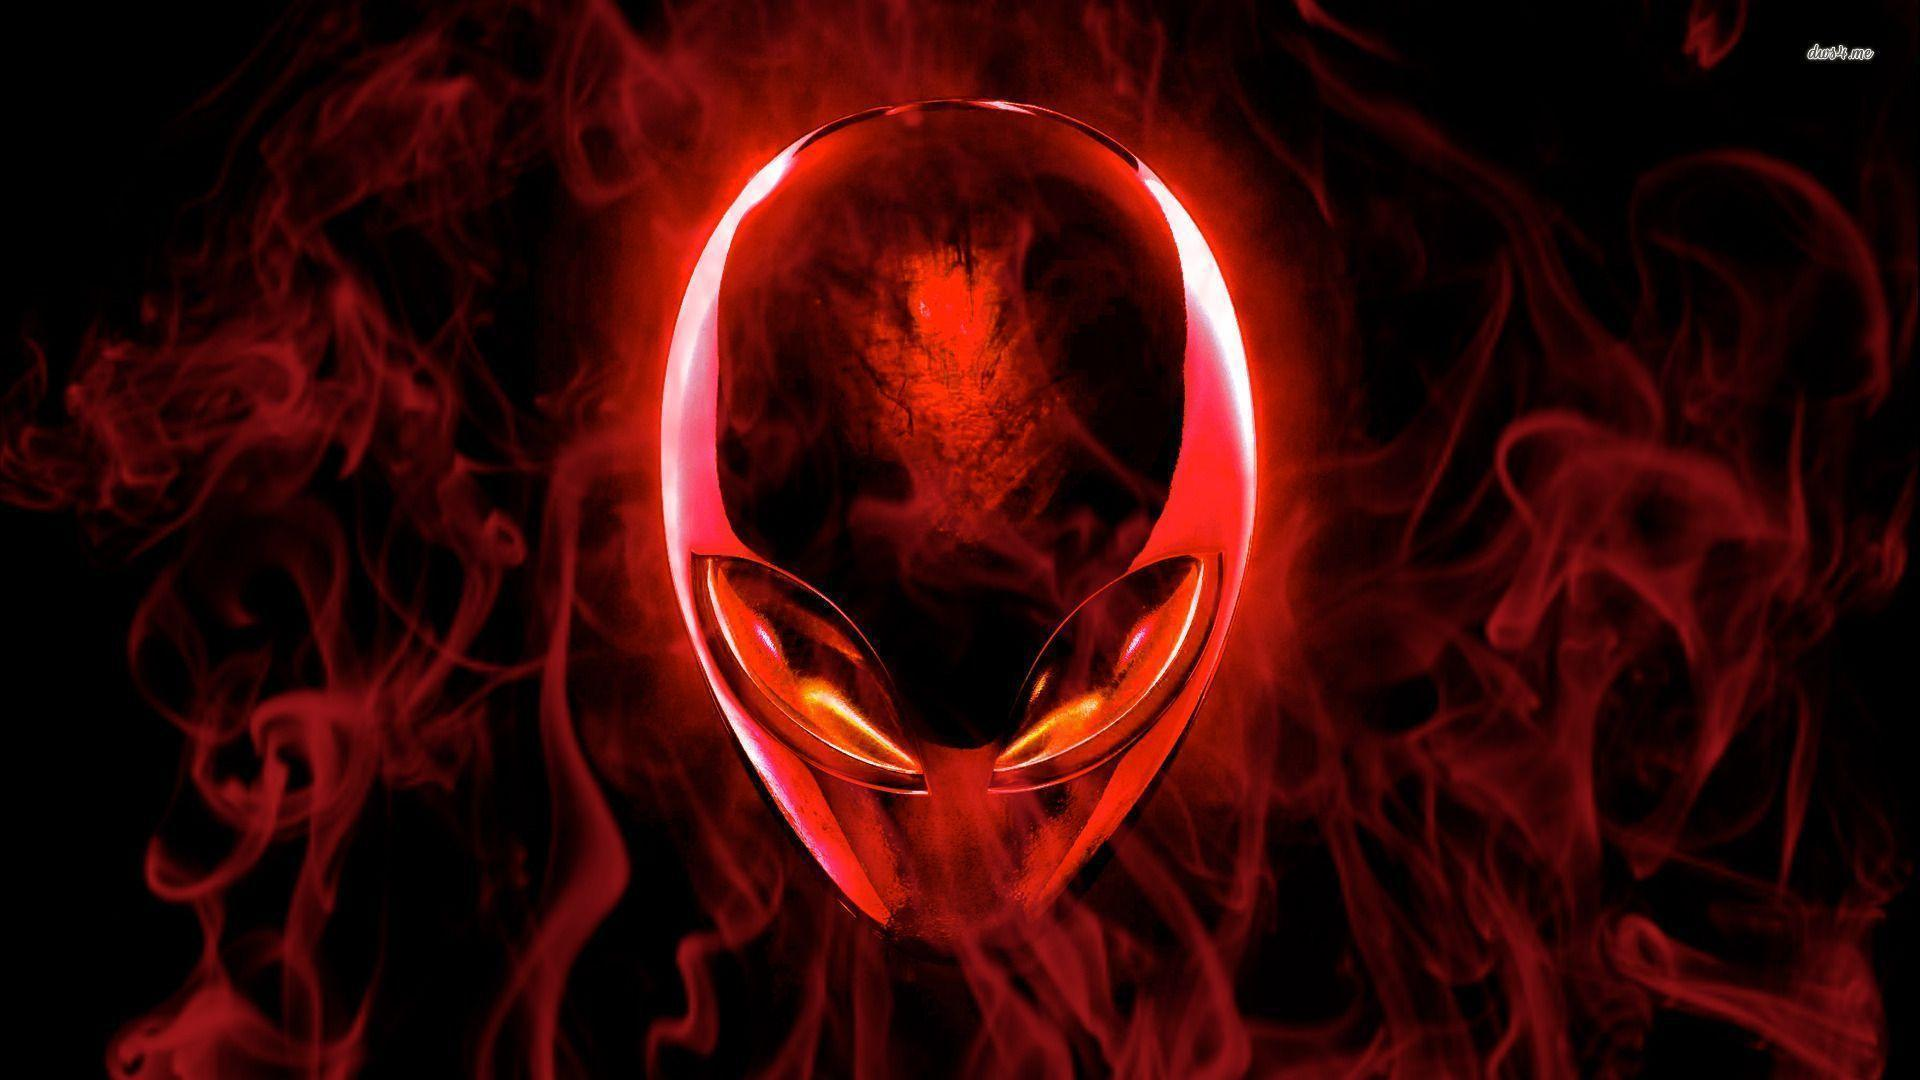 Red Alienware Wallpapers - Wallpaper Cave